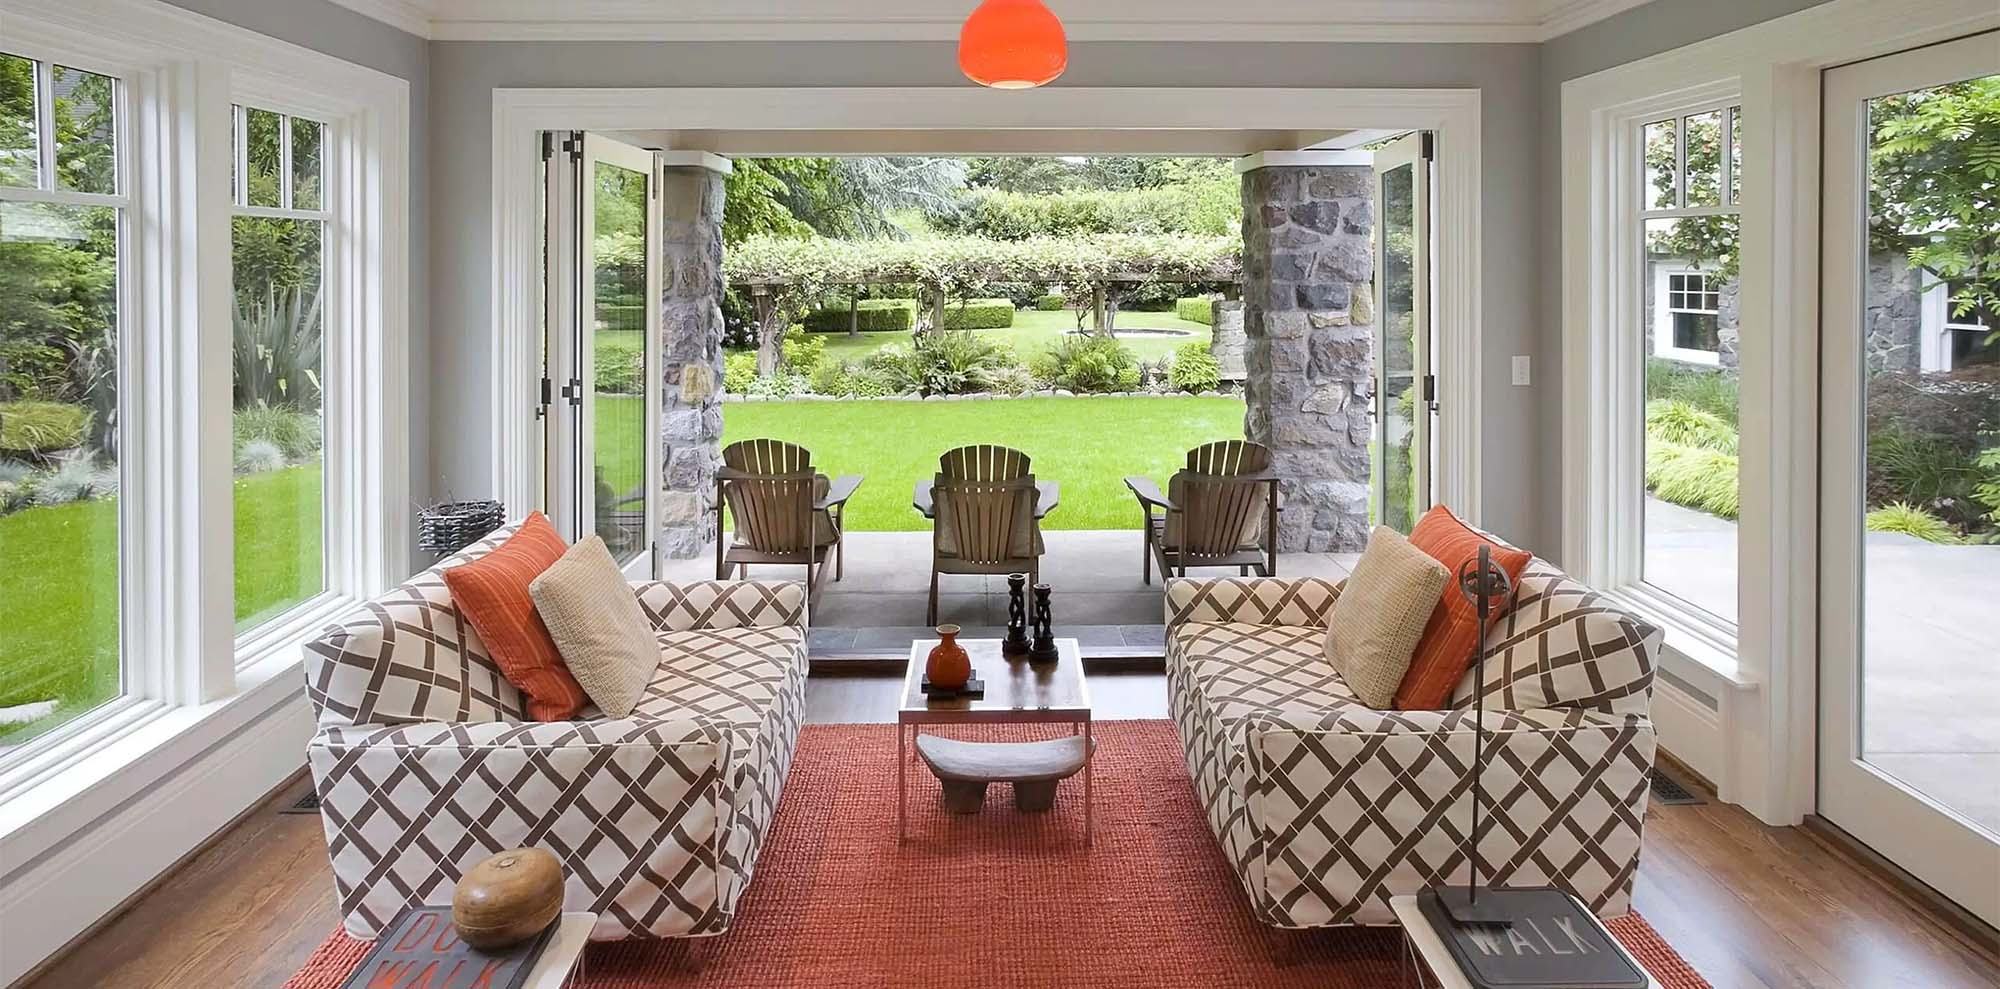 sunroom builder monmouth county NJ stunning sunroom with red area rug - Gambrick